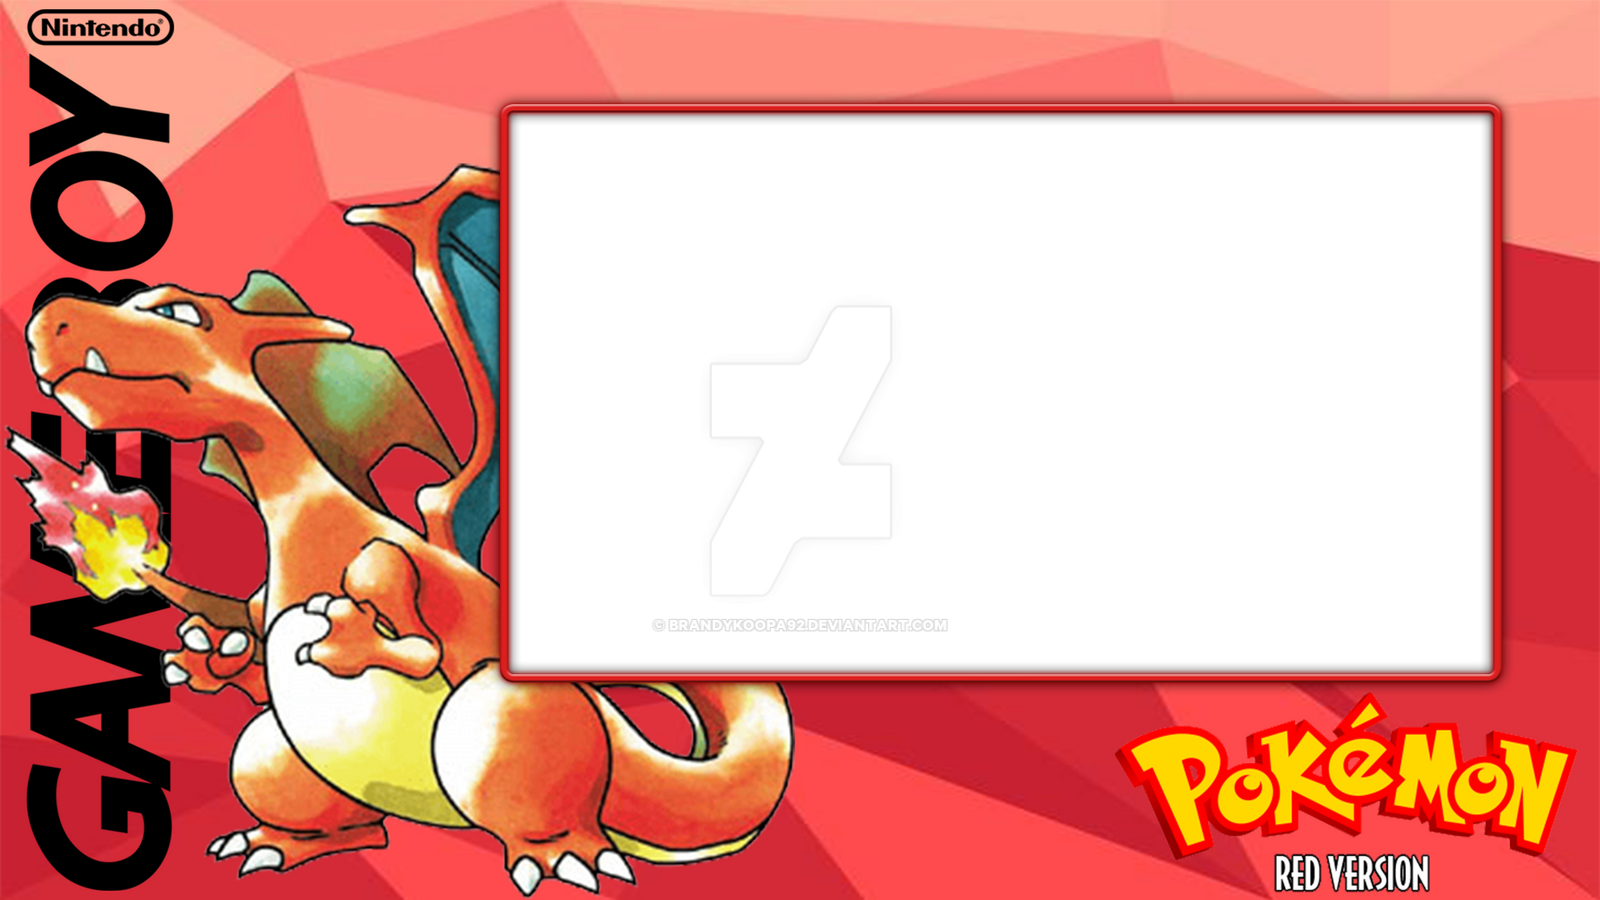 Pkmn red layout by BrandyKoopa92